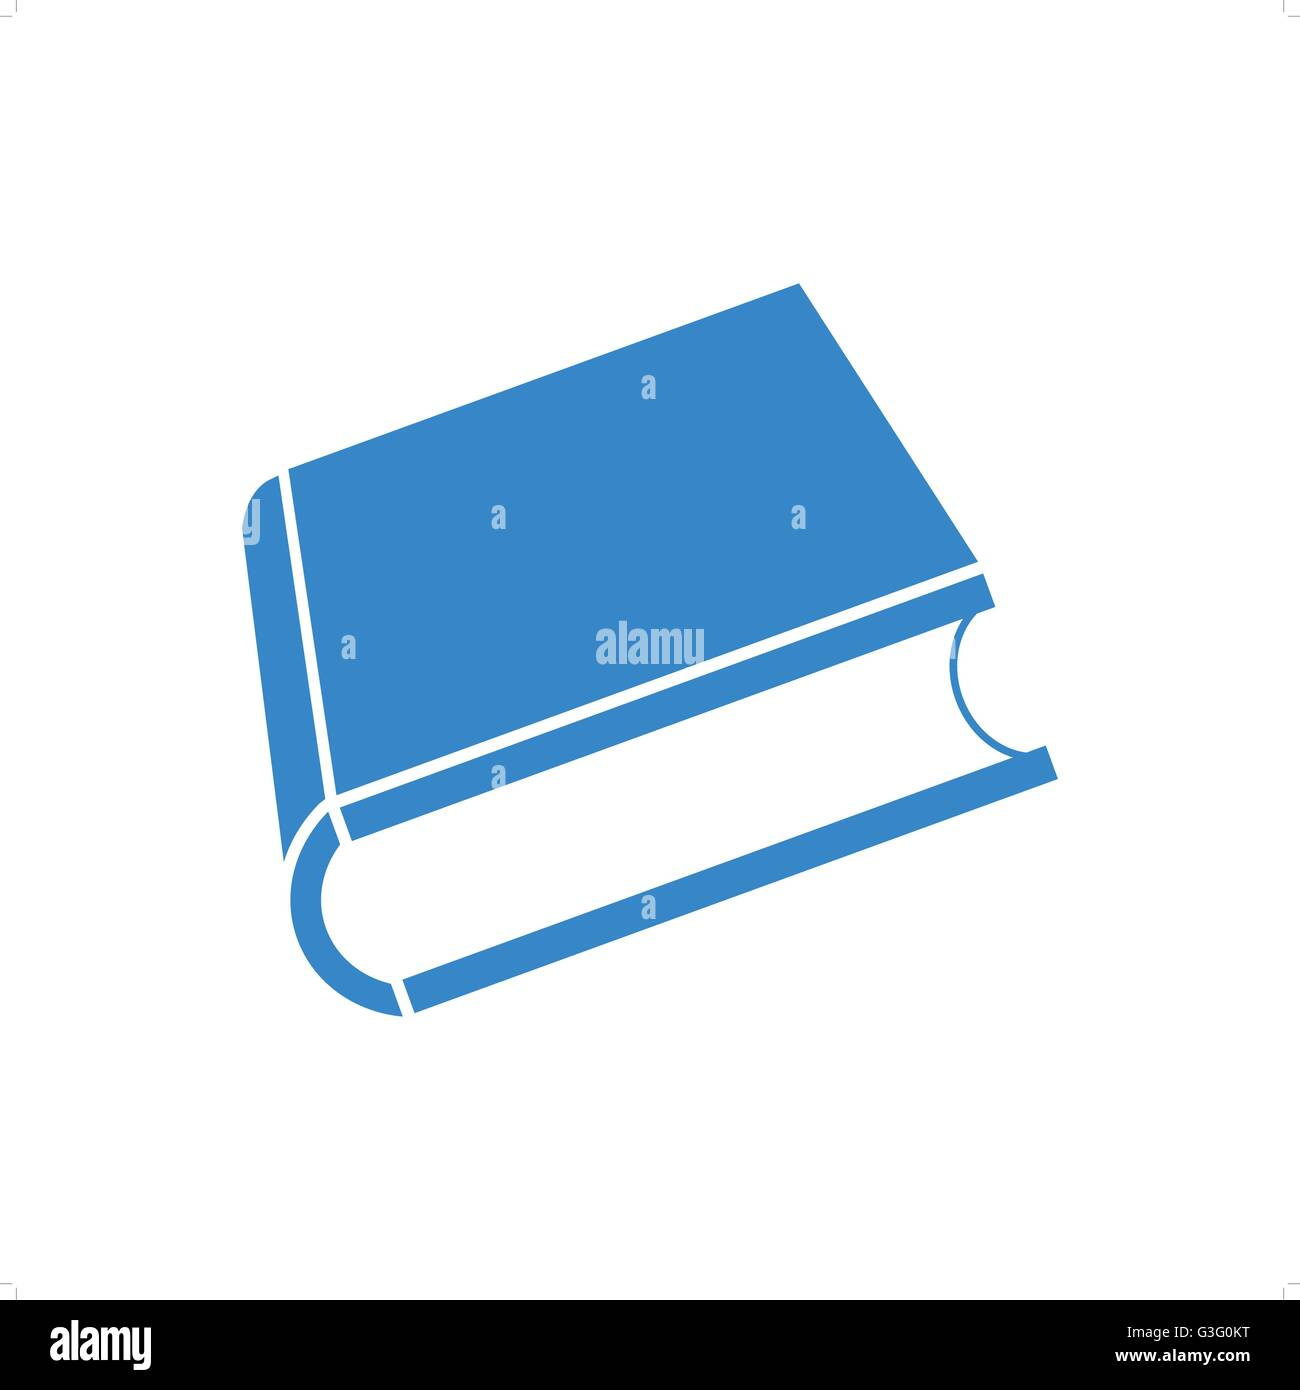 Blue Book Cover Background : Blank blue d book cover vector illustration isolated on